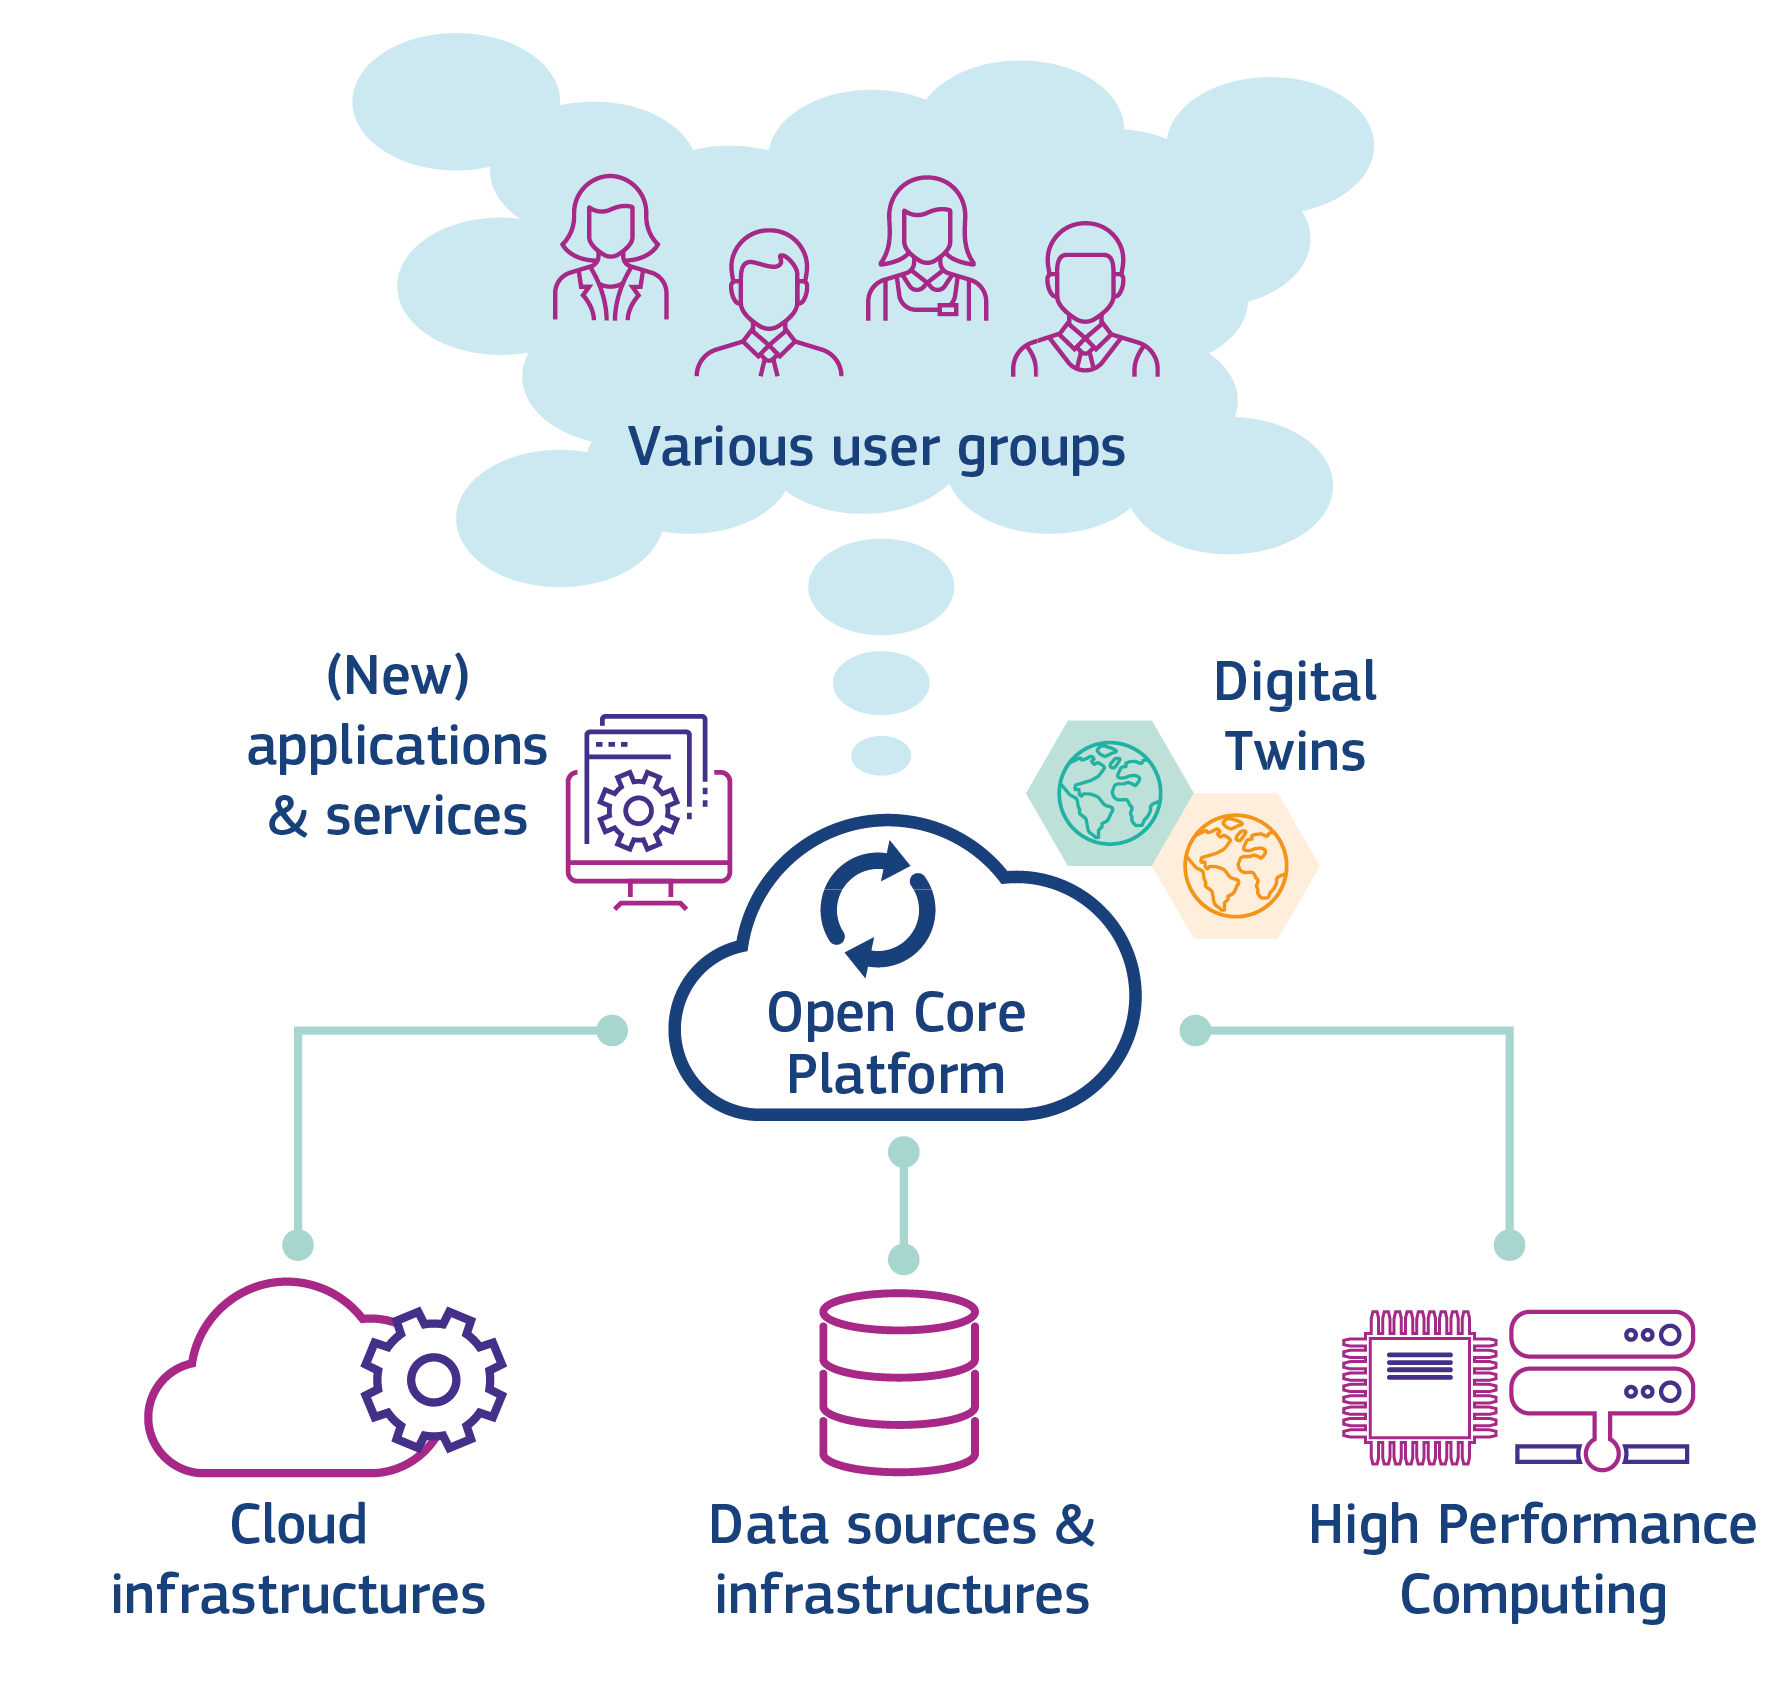 Infographic showing open corse platform being fed by cloud infrastructures, data sources, high performance computing and helping various user groups